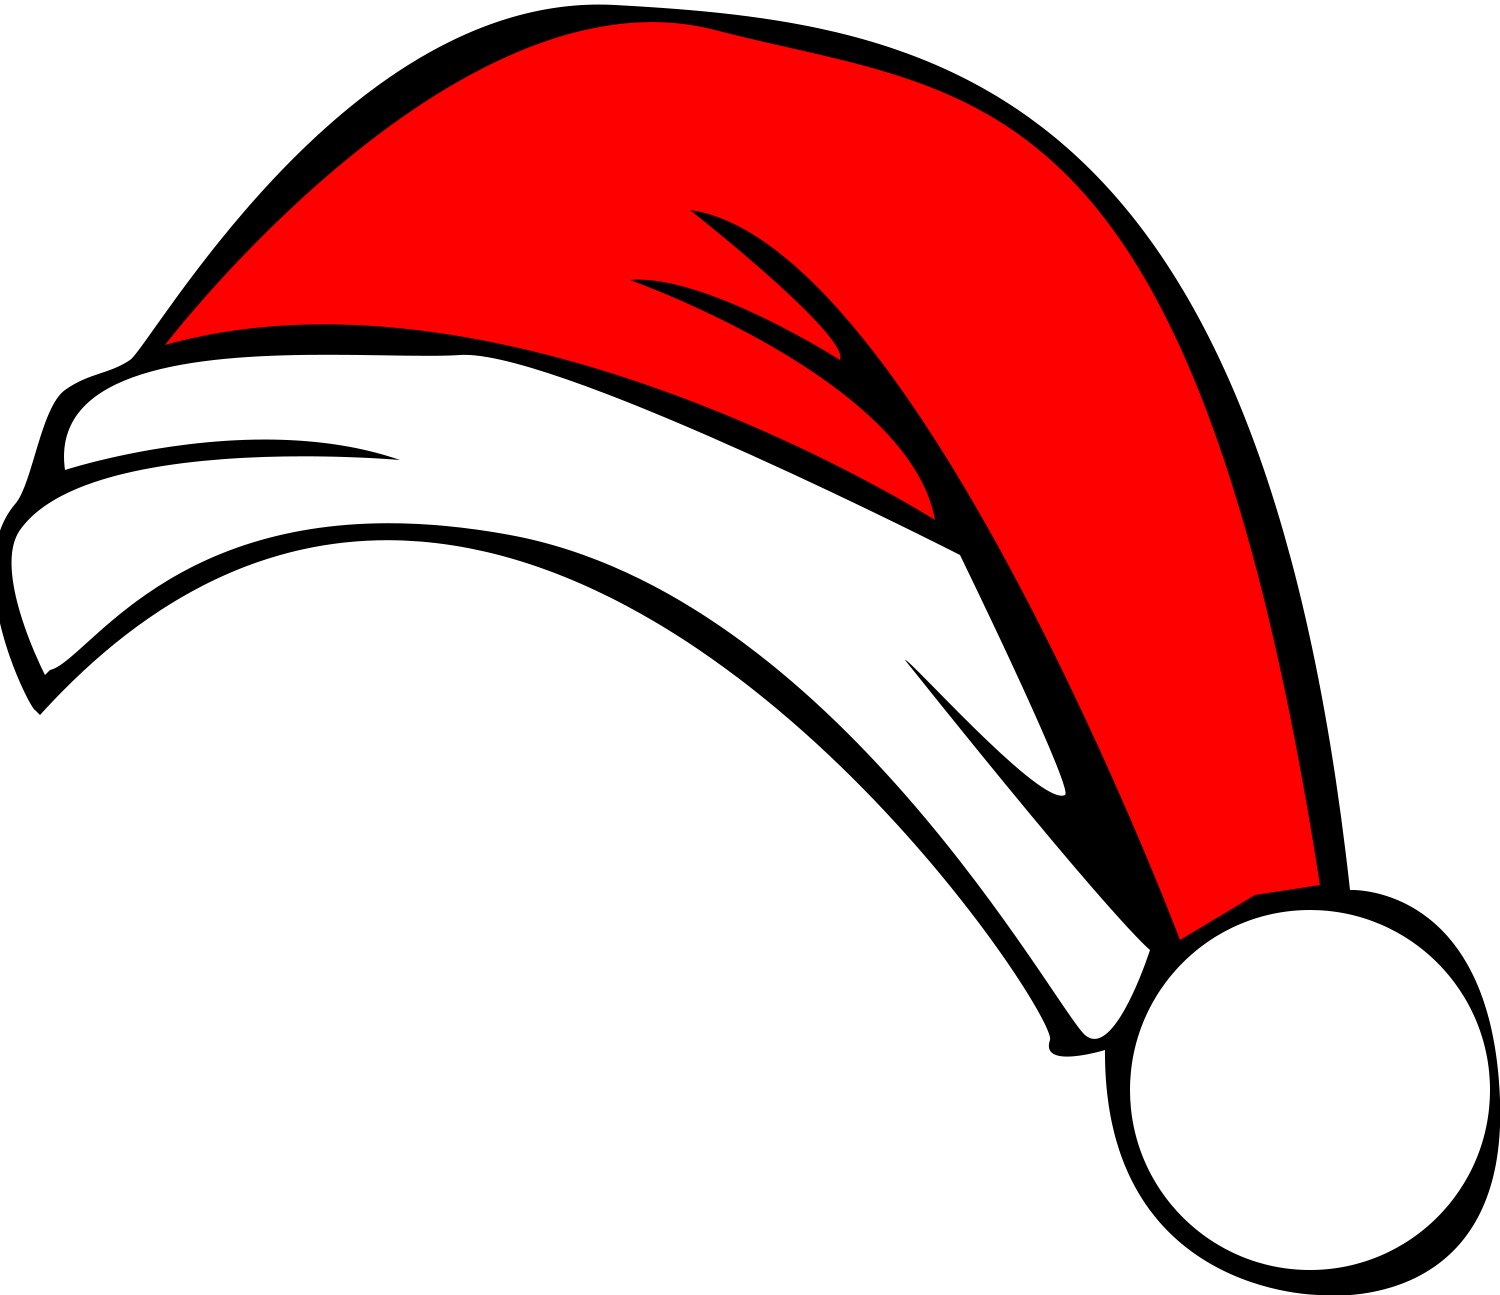 Christmas hat clipart outline.